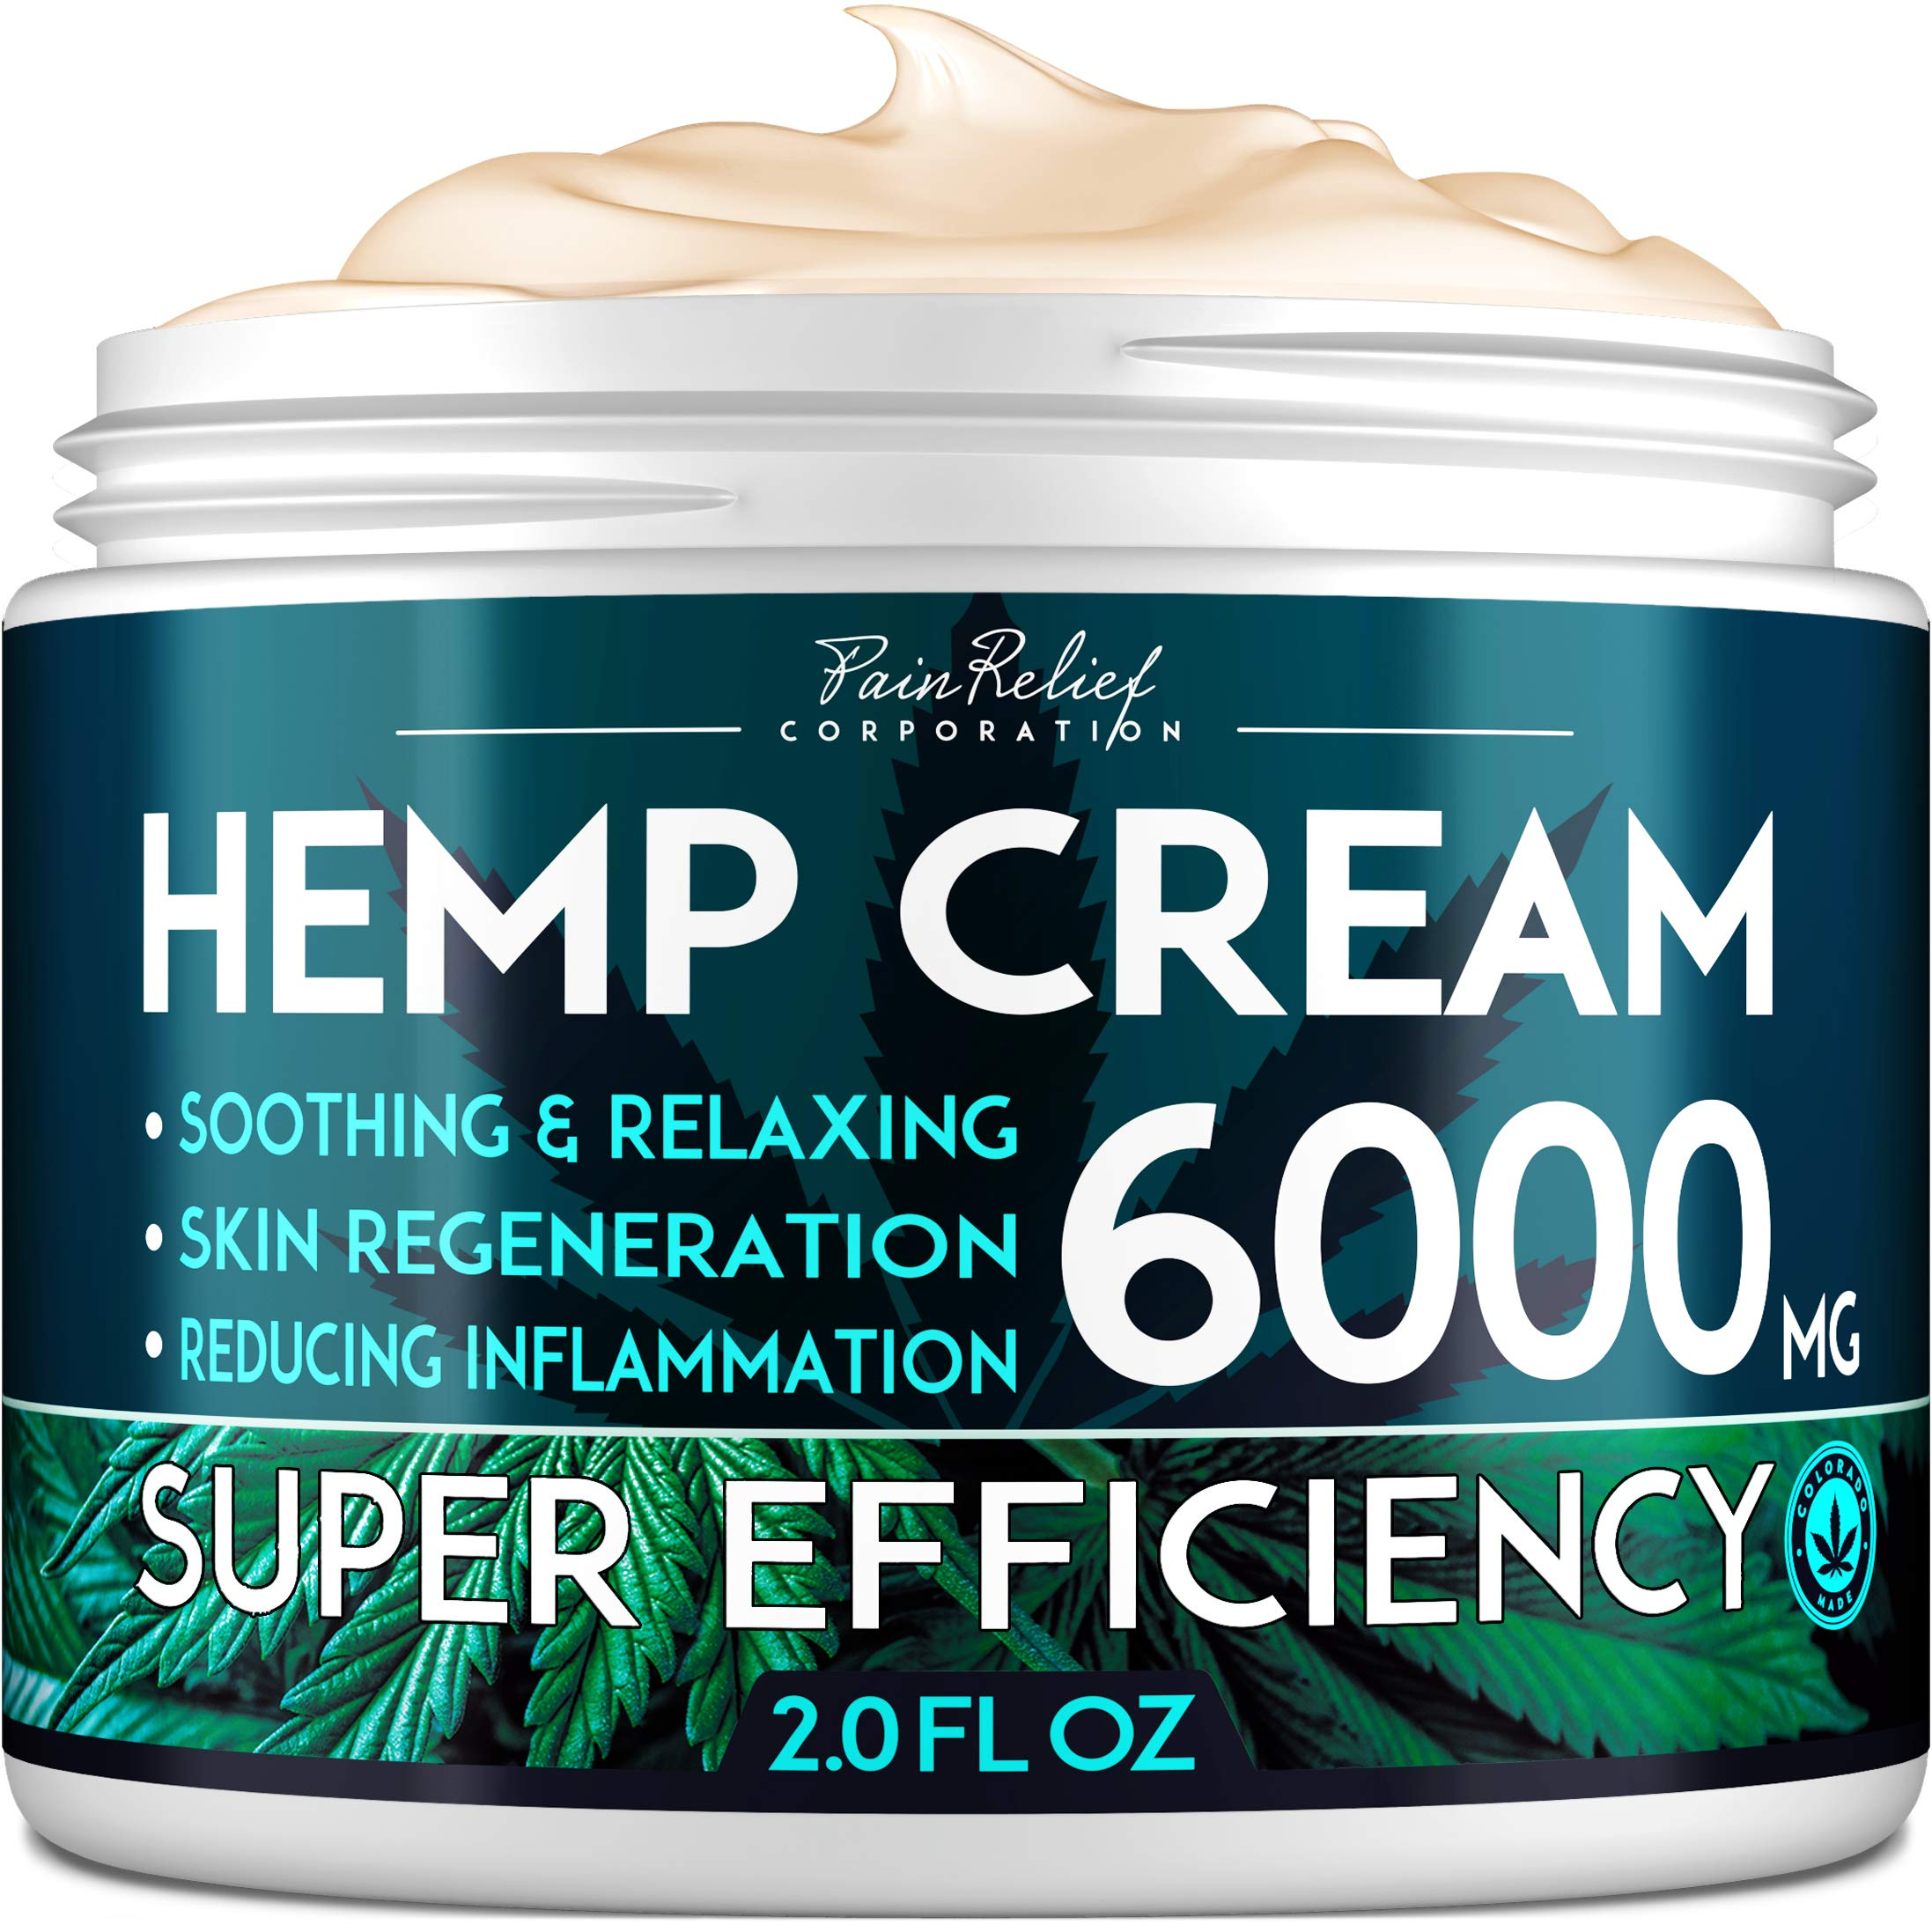 Hemp Pain Relief Cream (6000 Mg) - Natural Hemp Extract Cream for Arthritis, Back Pain & Muscle Pain Relief - Efficient Inflammation Cream & Carpal Tunnel Relief - Made in USA - Good for Skin Health by Pain Relief Inc.